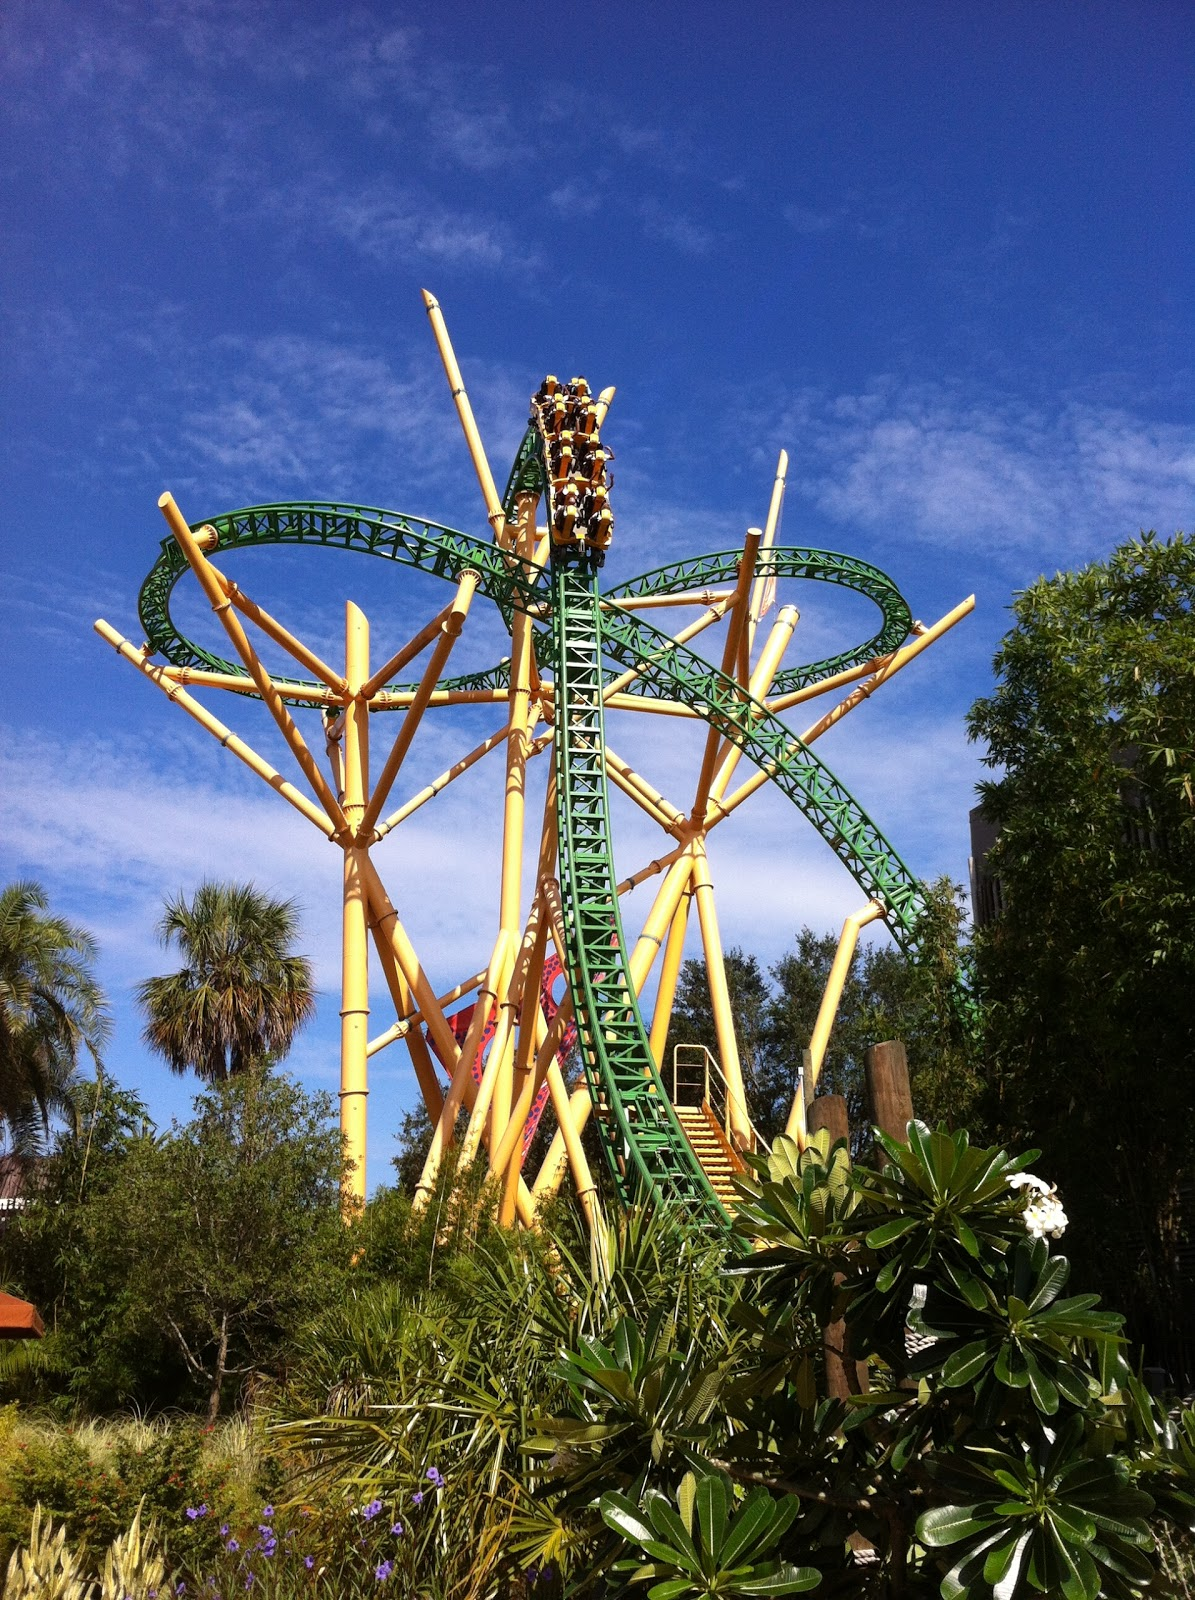 Busch Gardens Tampa My Day Of Roller Coasters Beef Brisket And Animal Sightings Adventures